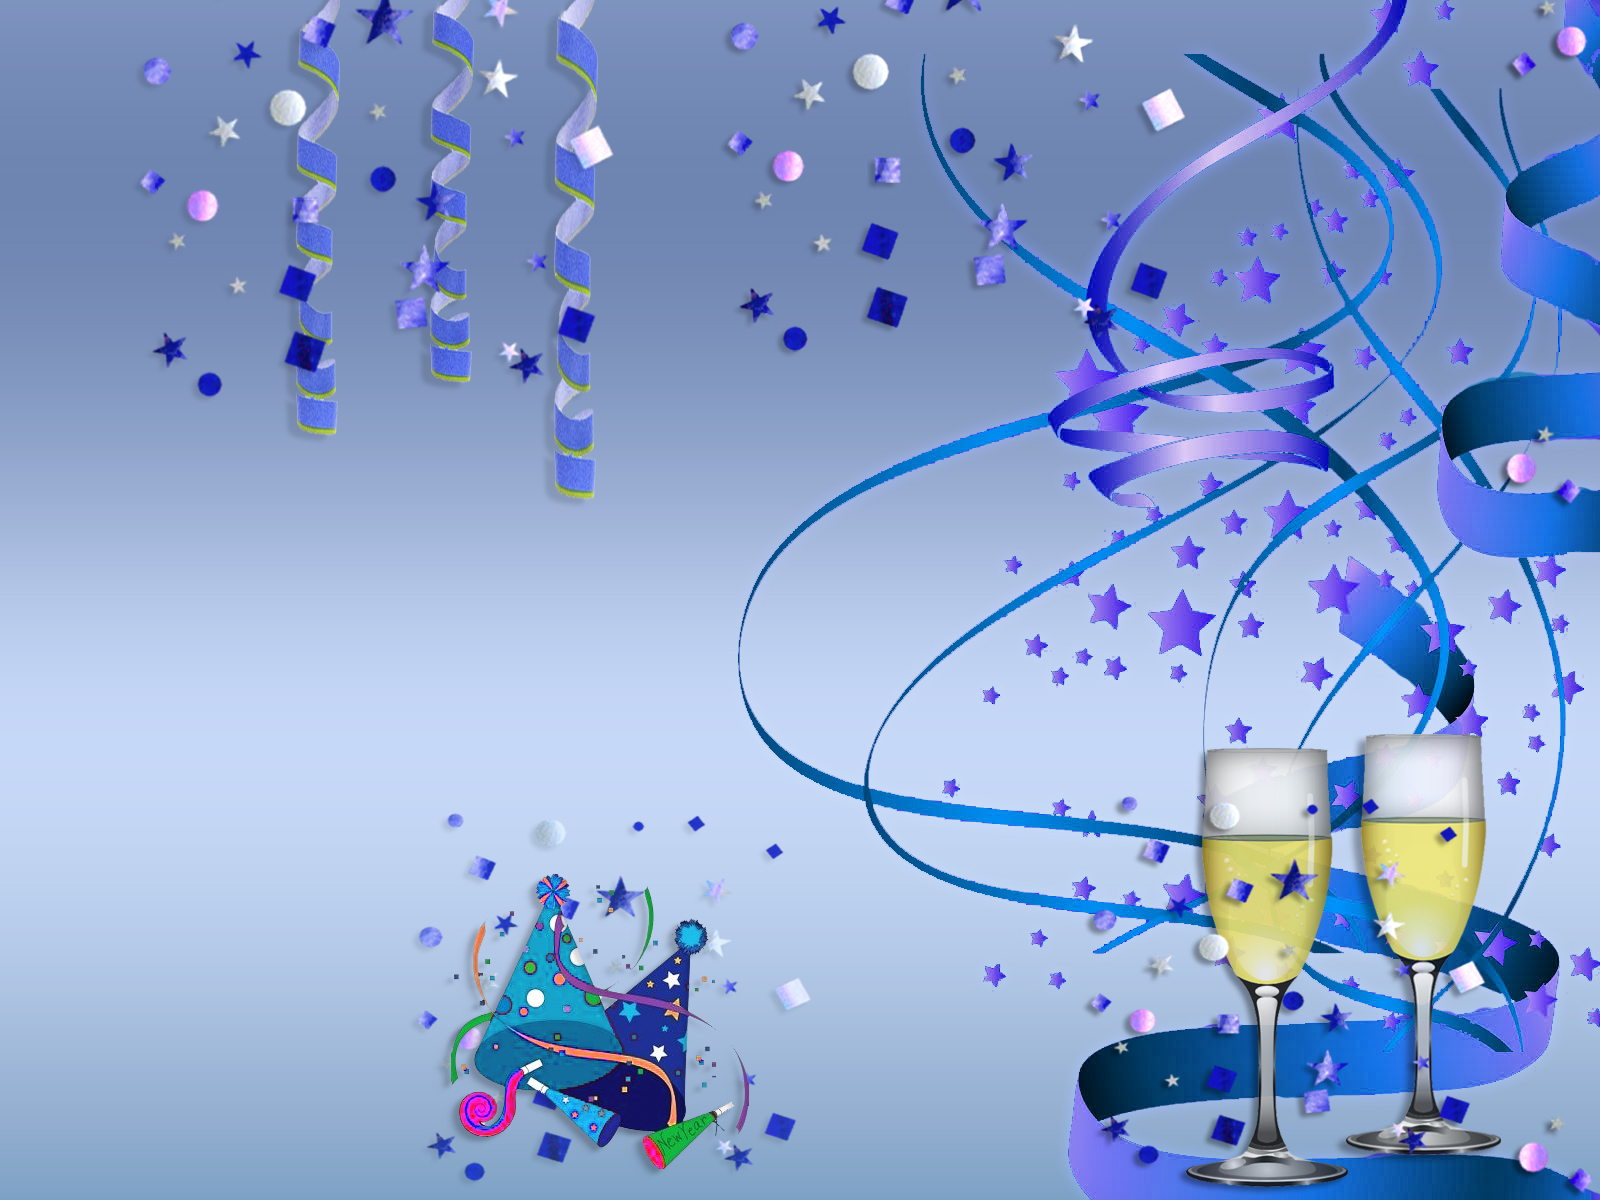 45 Amazing New Year Christmas Candle HR Wallpapers